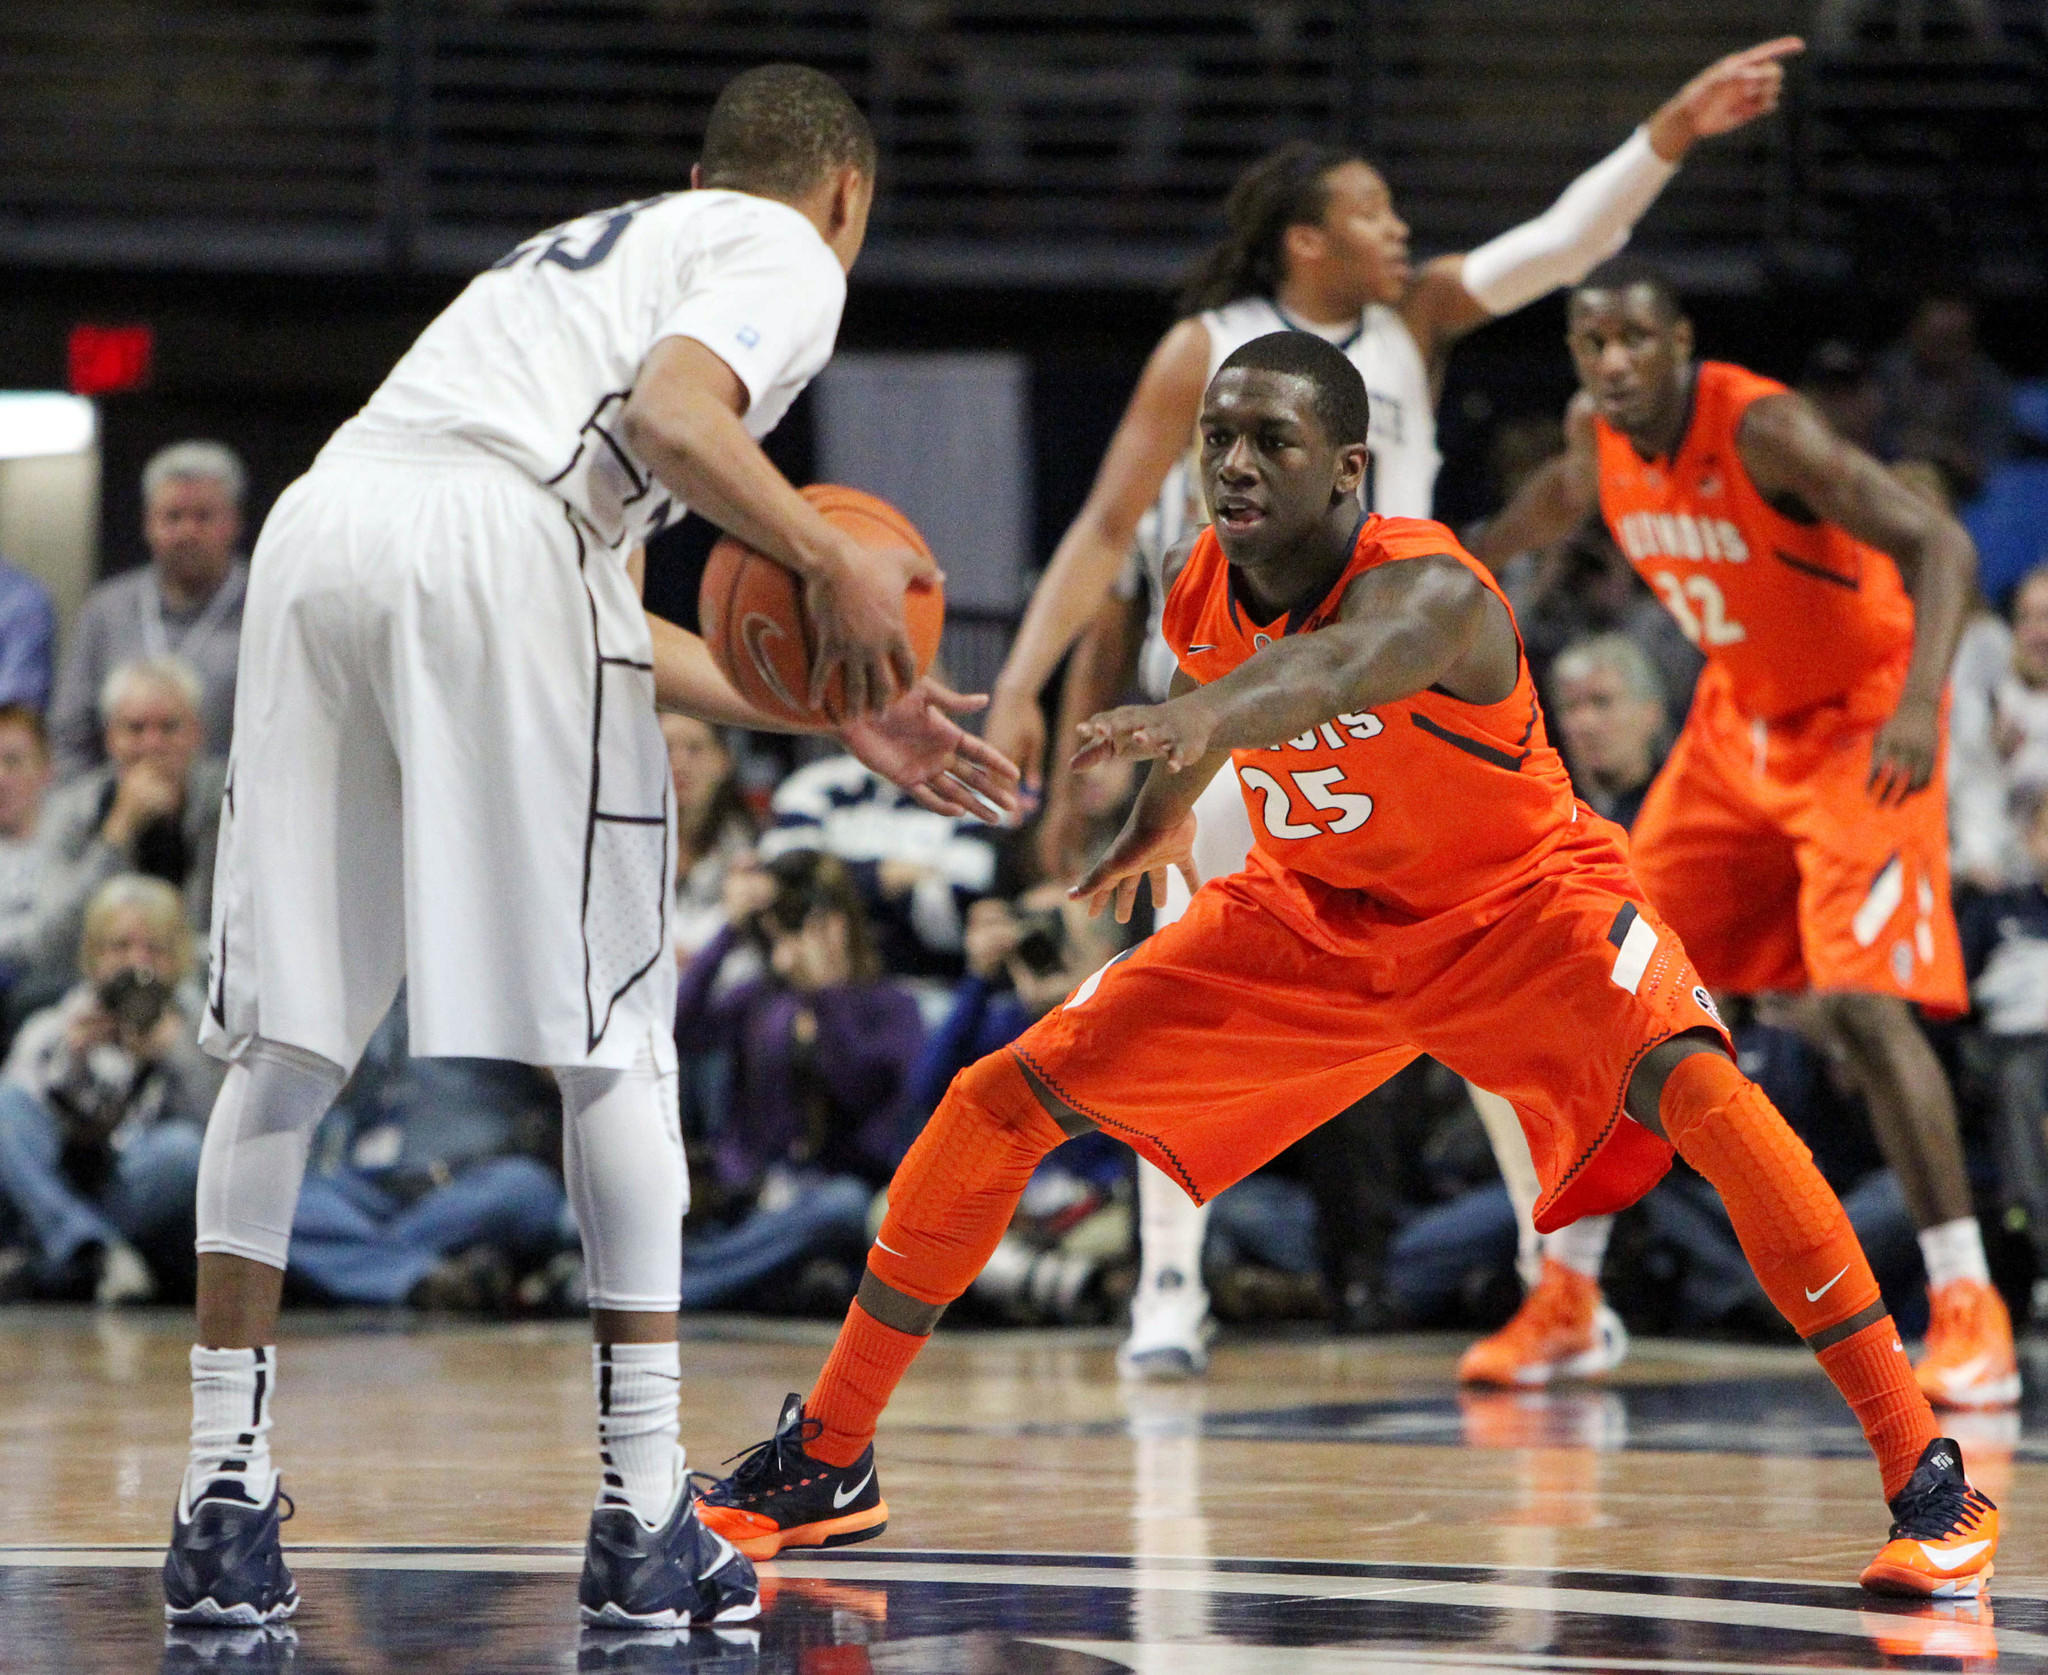 Kendrick Nunn guards Penn State's Tim Frazier during the second half.